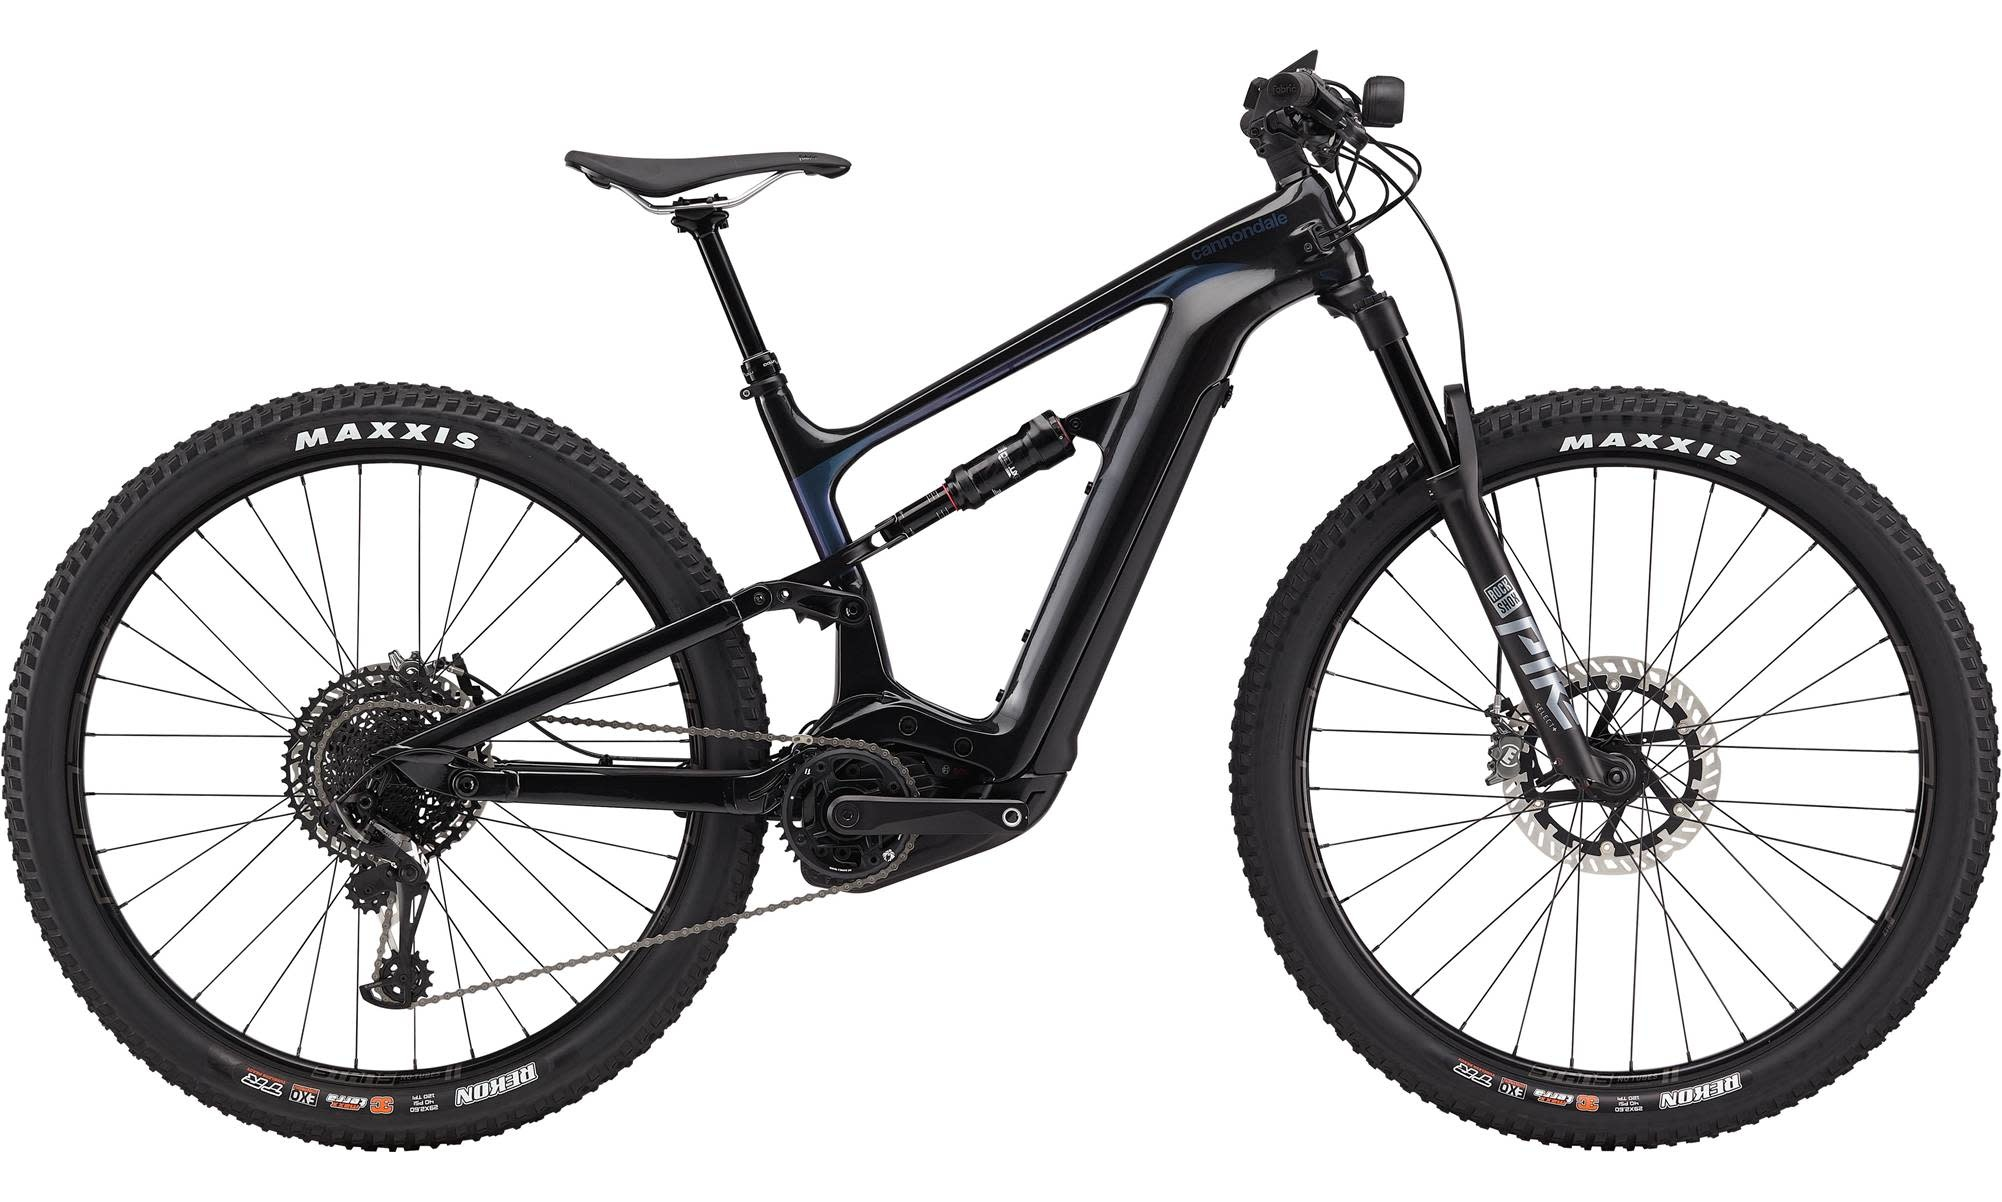 Cannondale Cannondale Habit Neo 1 Electric Mountain Bike 2020